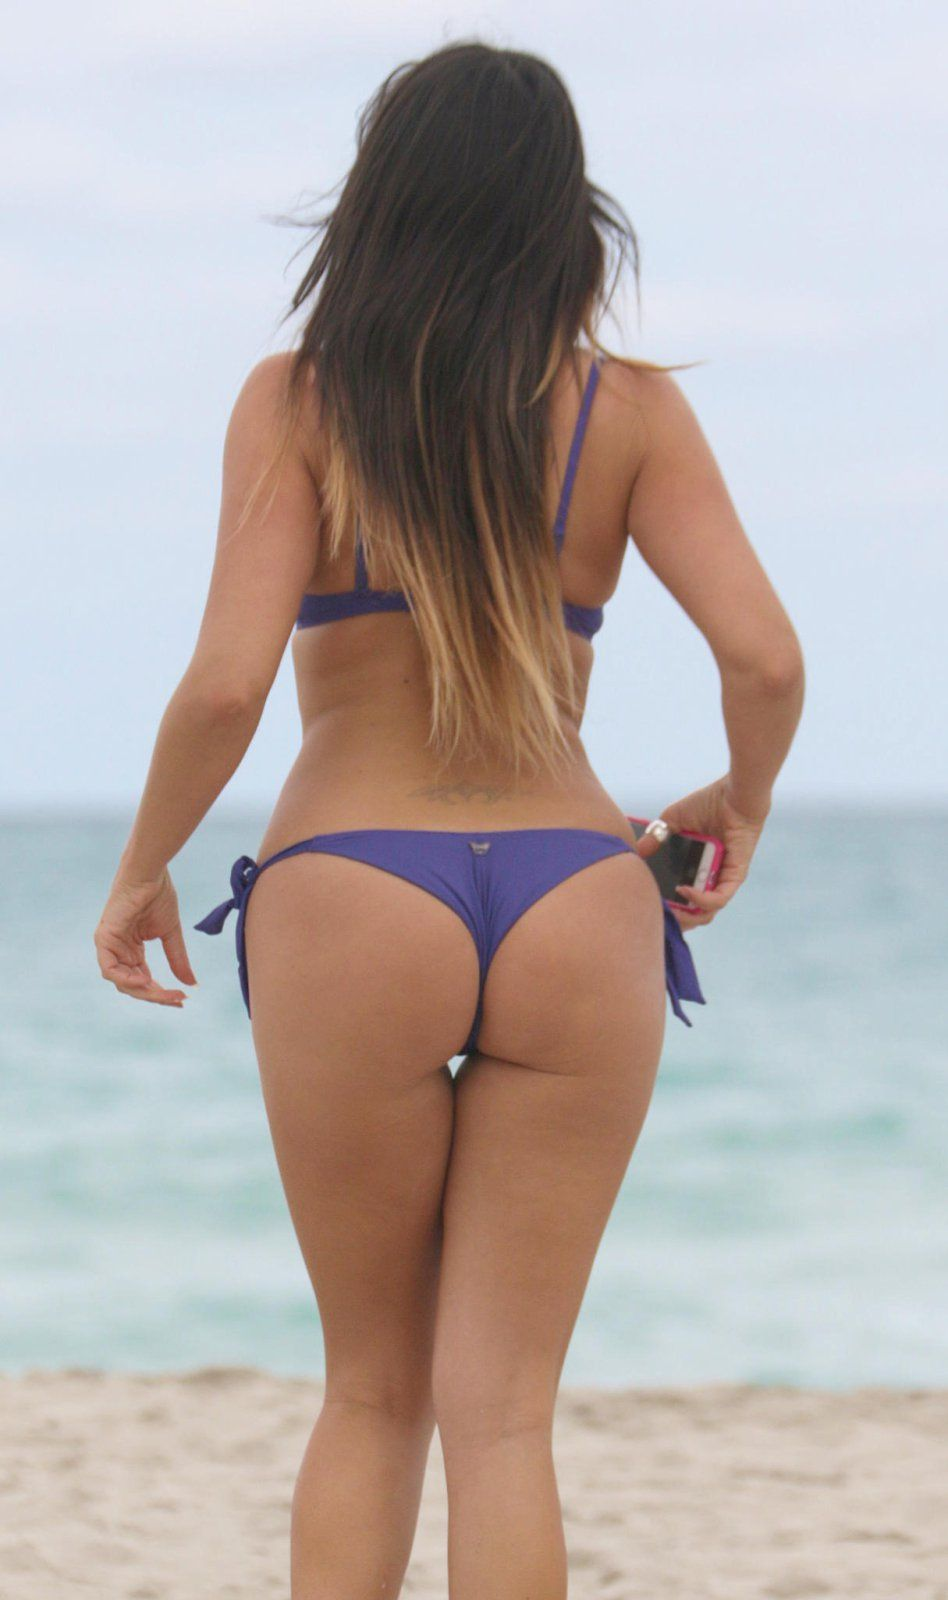 Claudia-Romani-in-Purple-Bikini-in-Miami-Beach-Kanoni-1